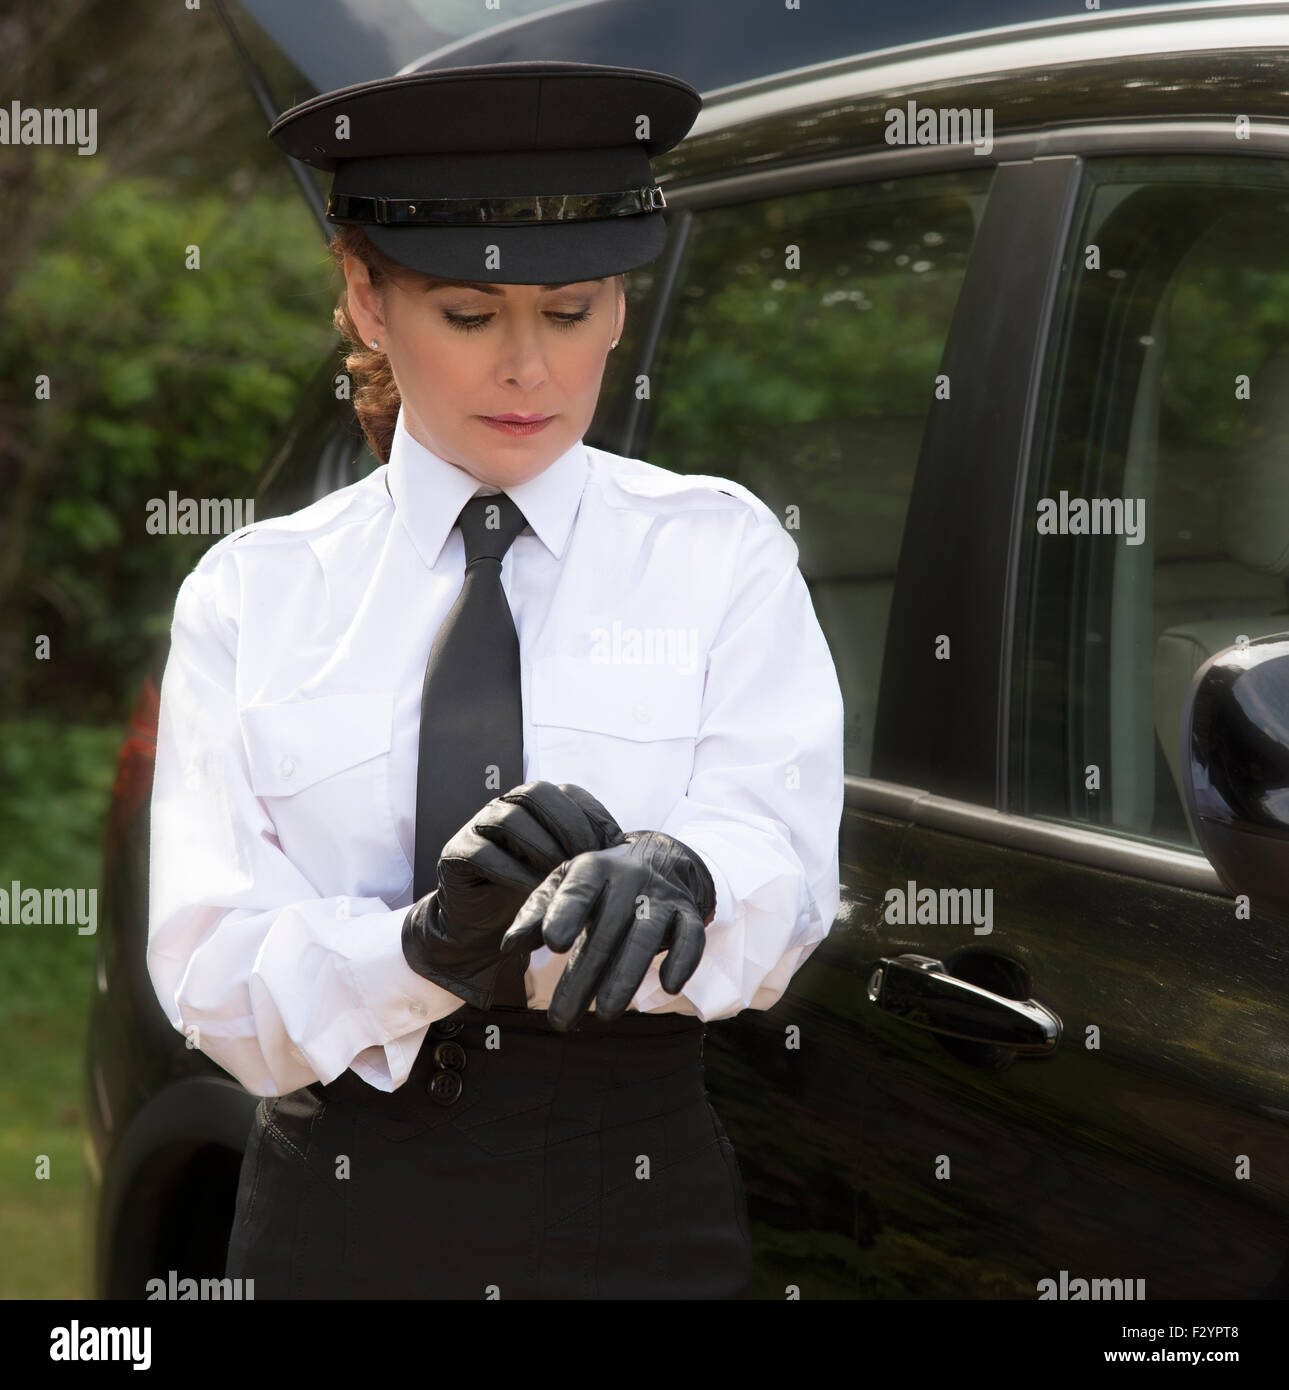 Black leather uniform gloves - Woman Chauffeur Wearing A Hat And Putting On Her Uniform Black Leather Gloves Stock Image